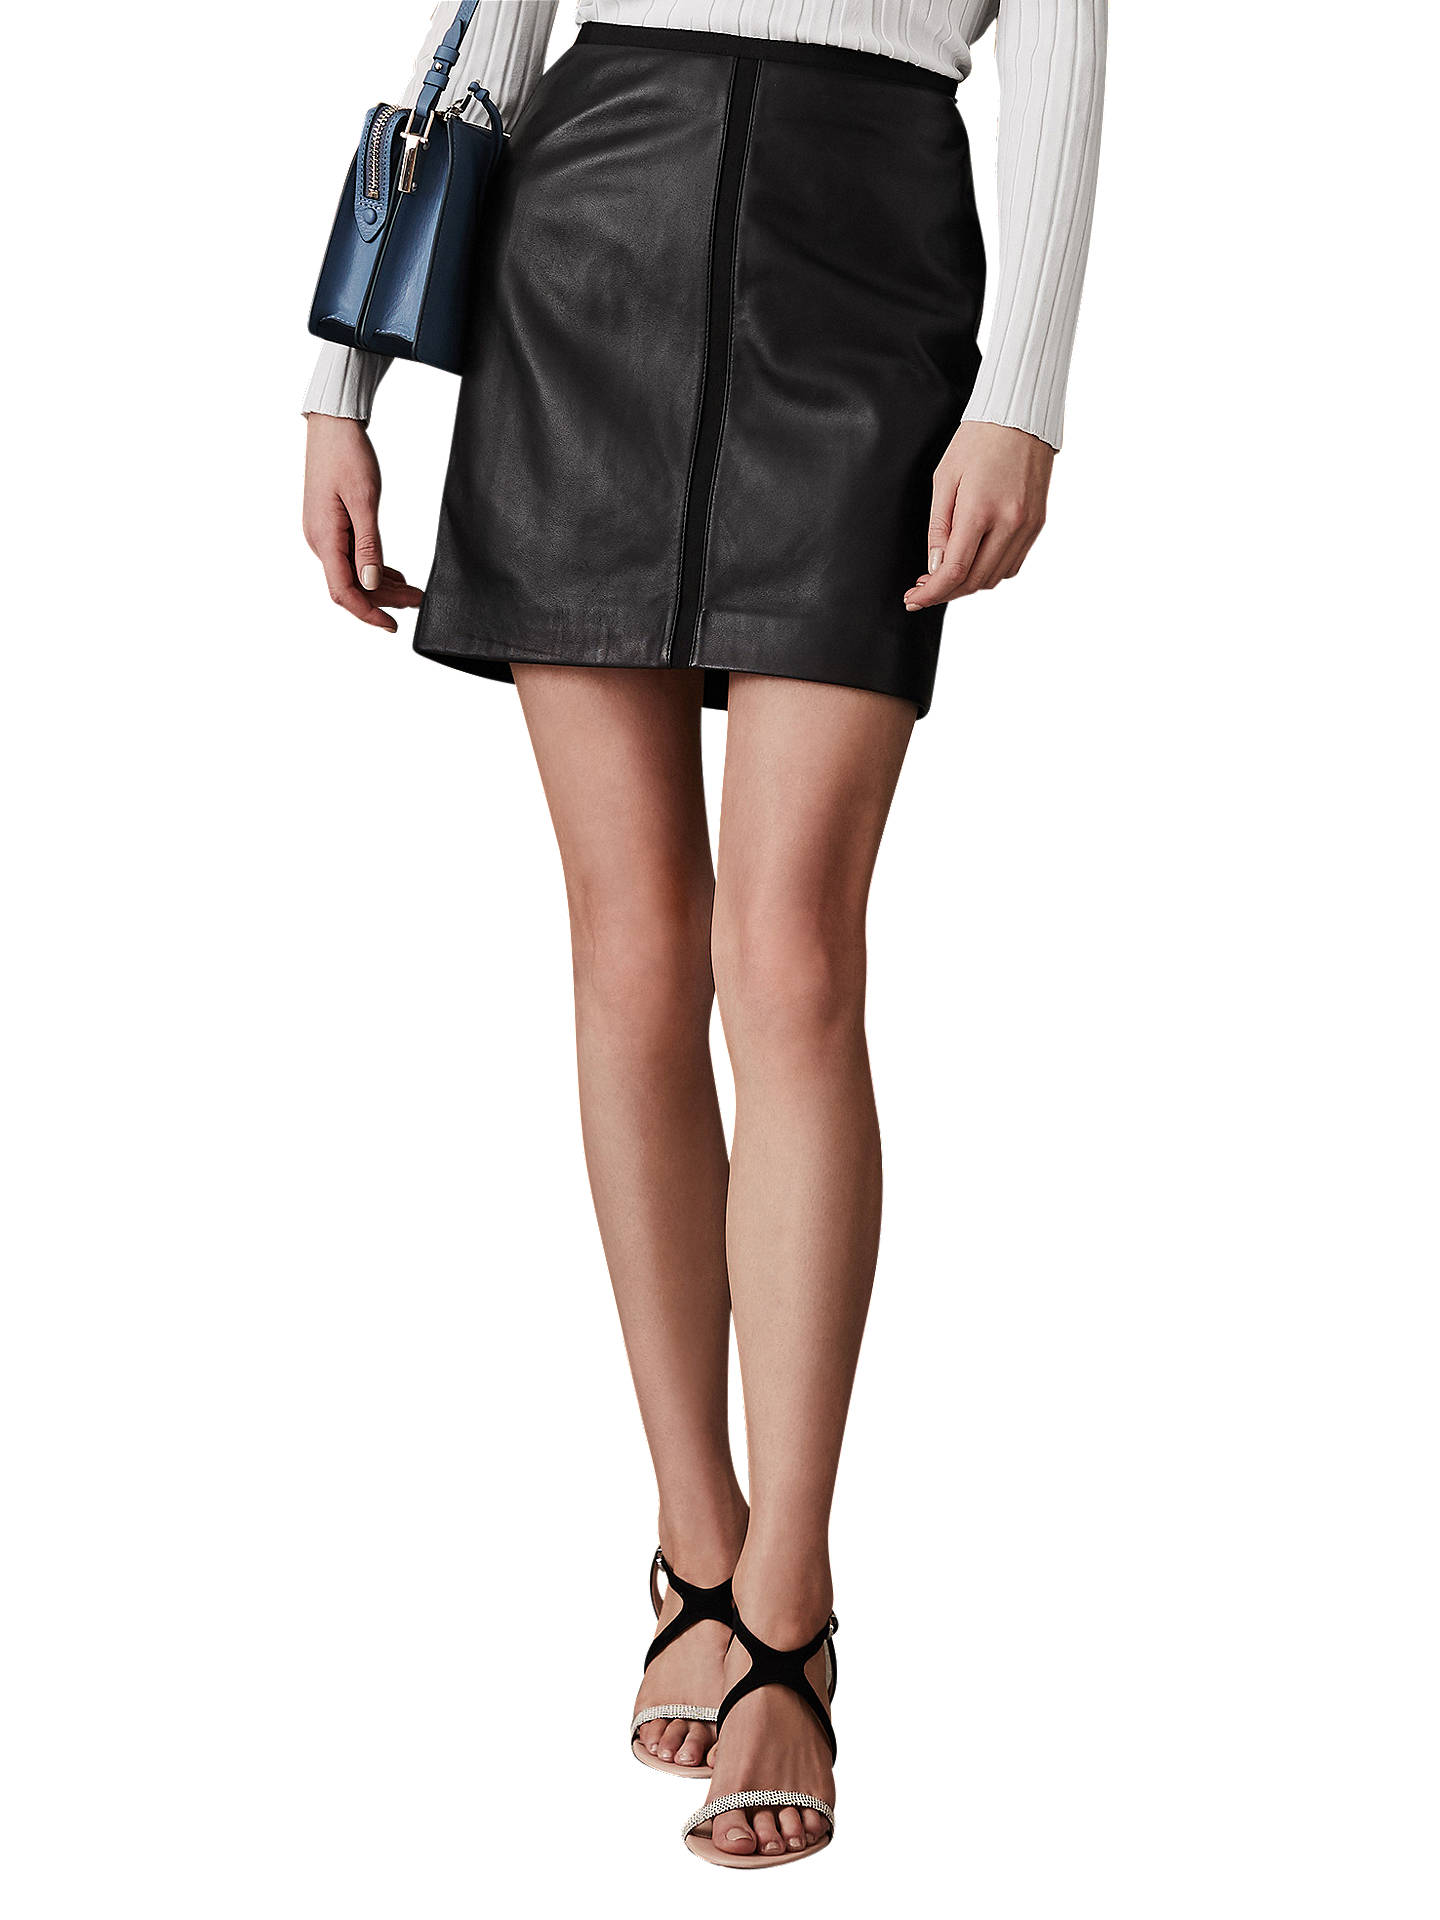 33b0c2935dd41d Buy Reiss Maisie Leather Pencil Skirt